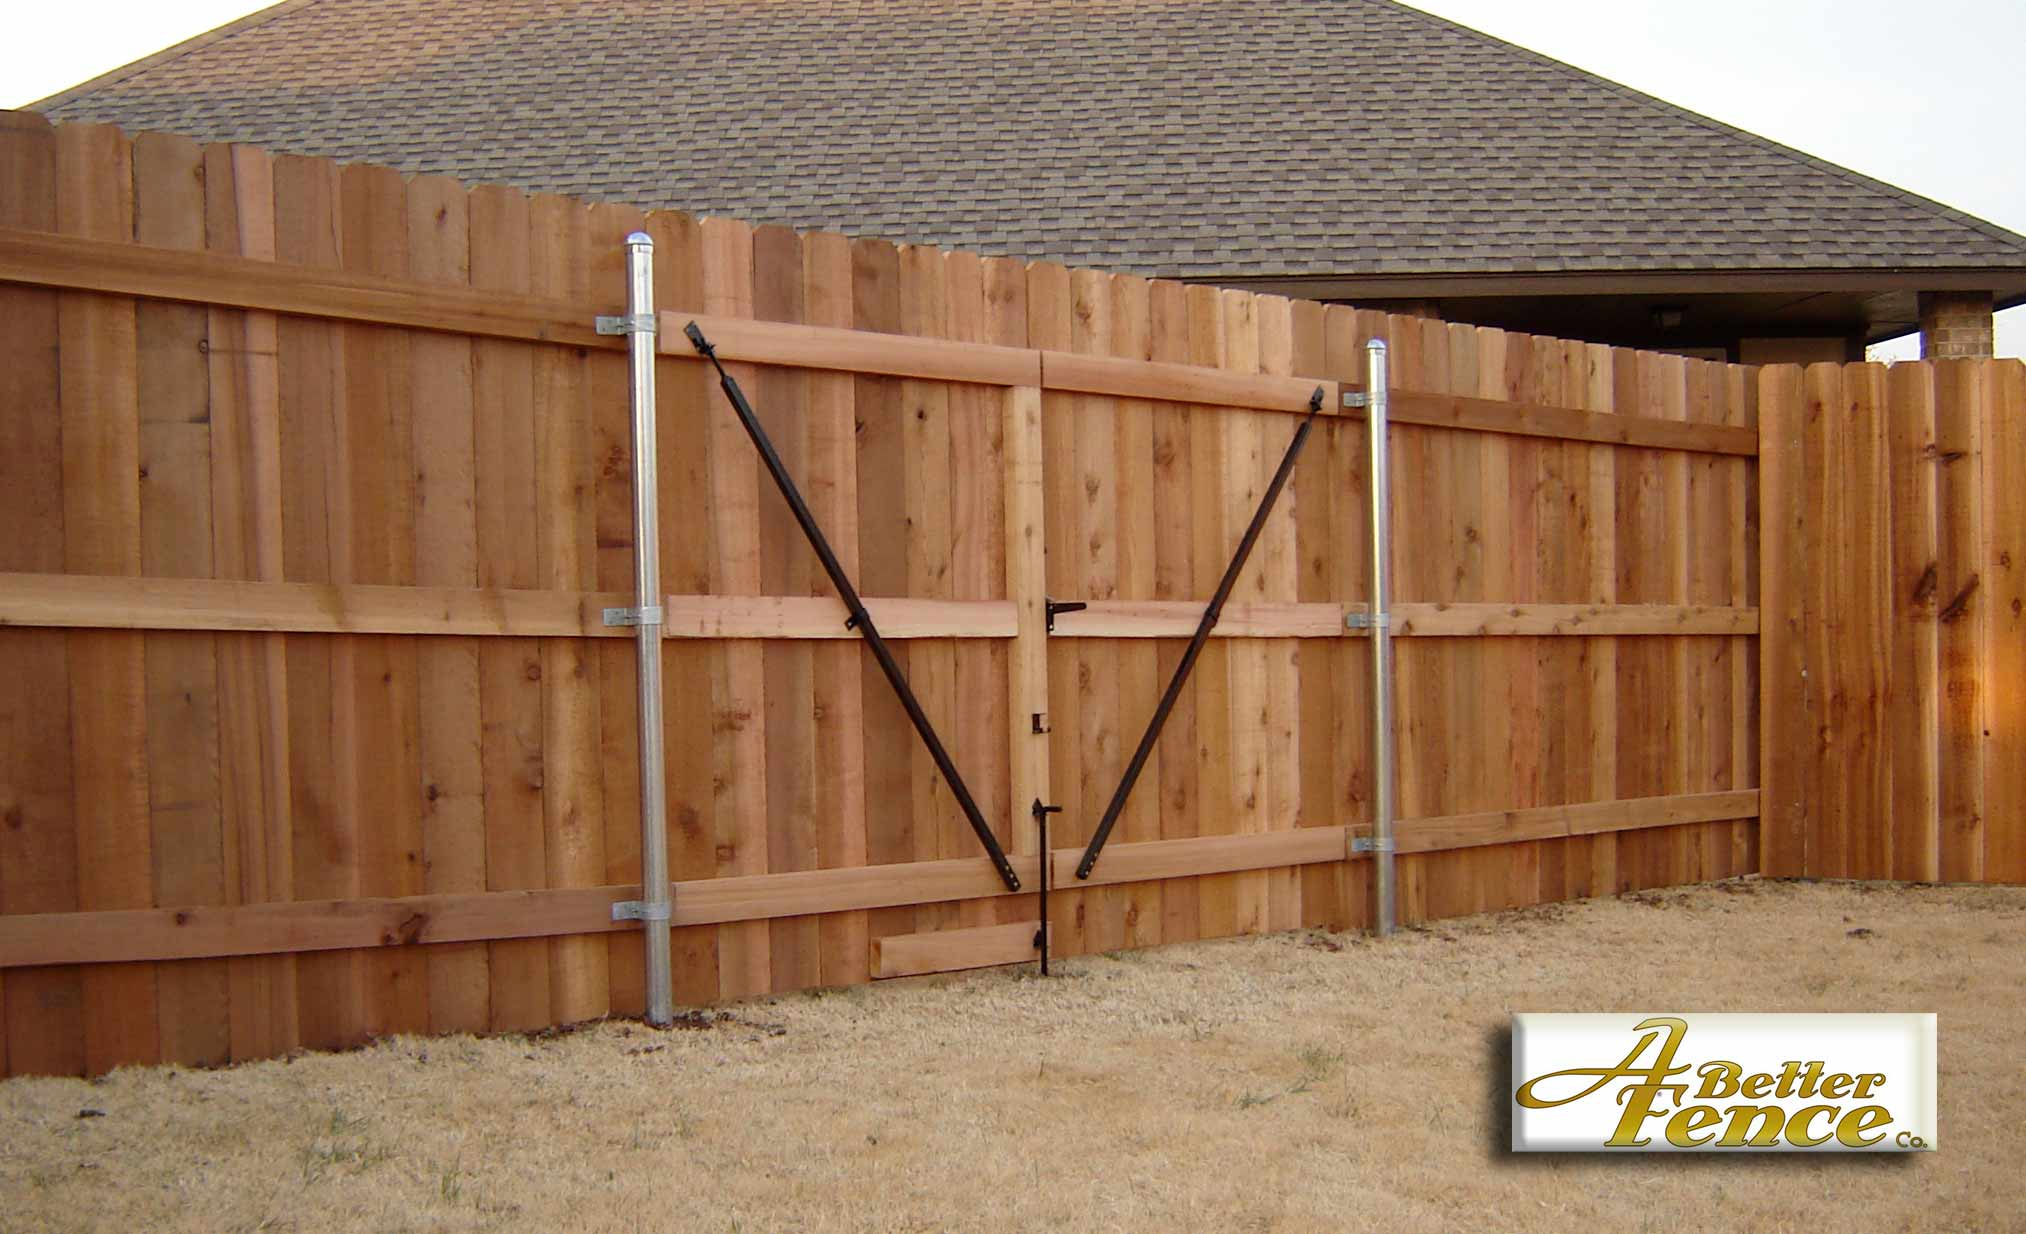 Pdf download how to make a privacy fence double gate plans for Diy fence gate designs